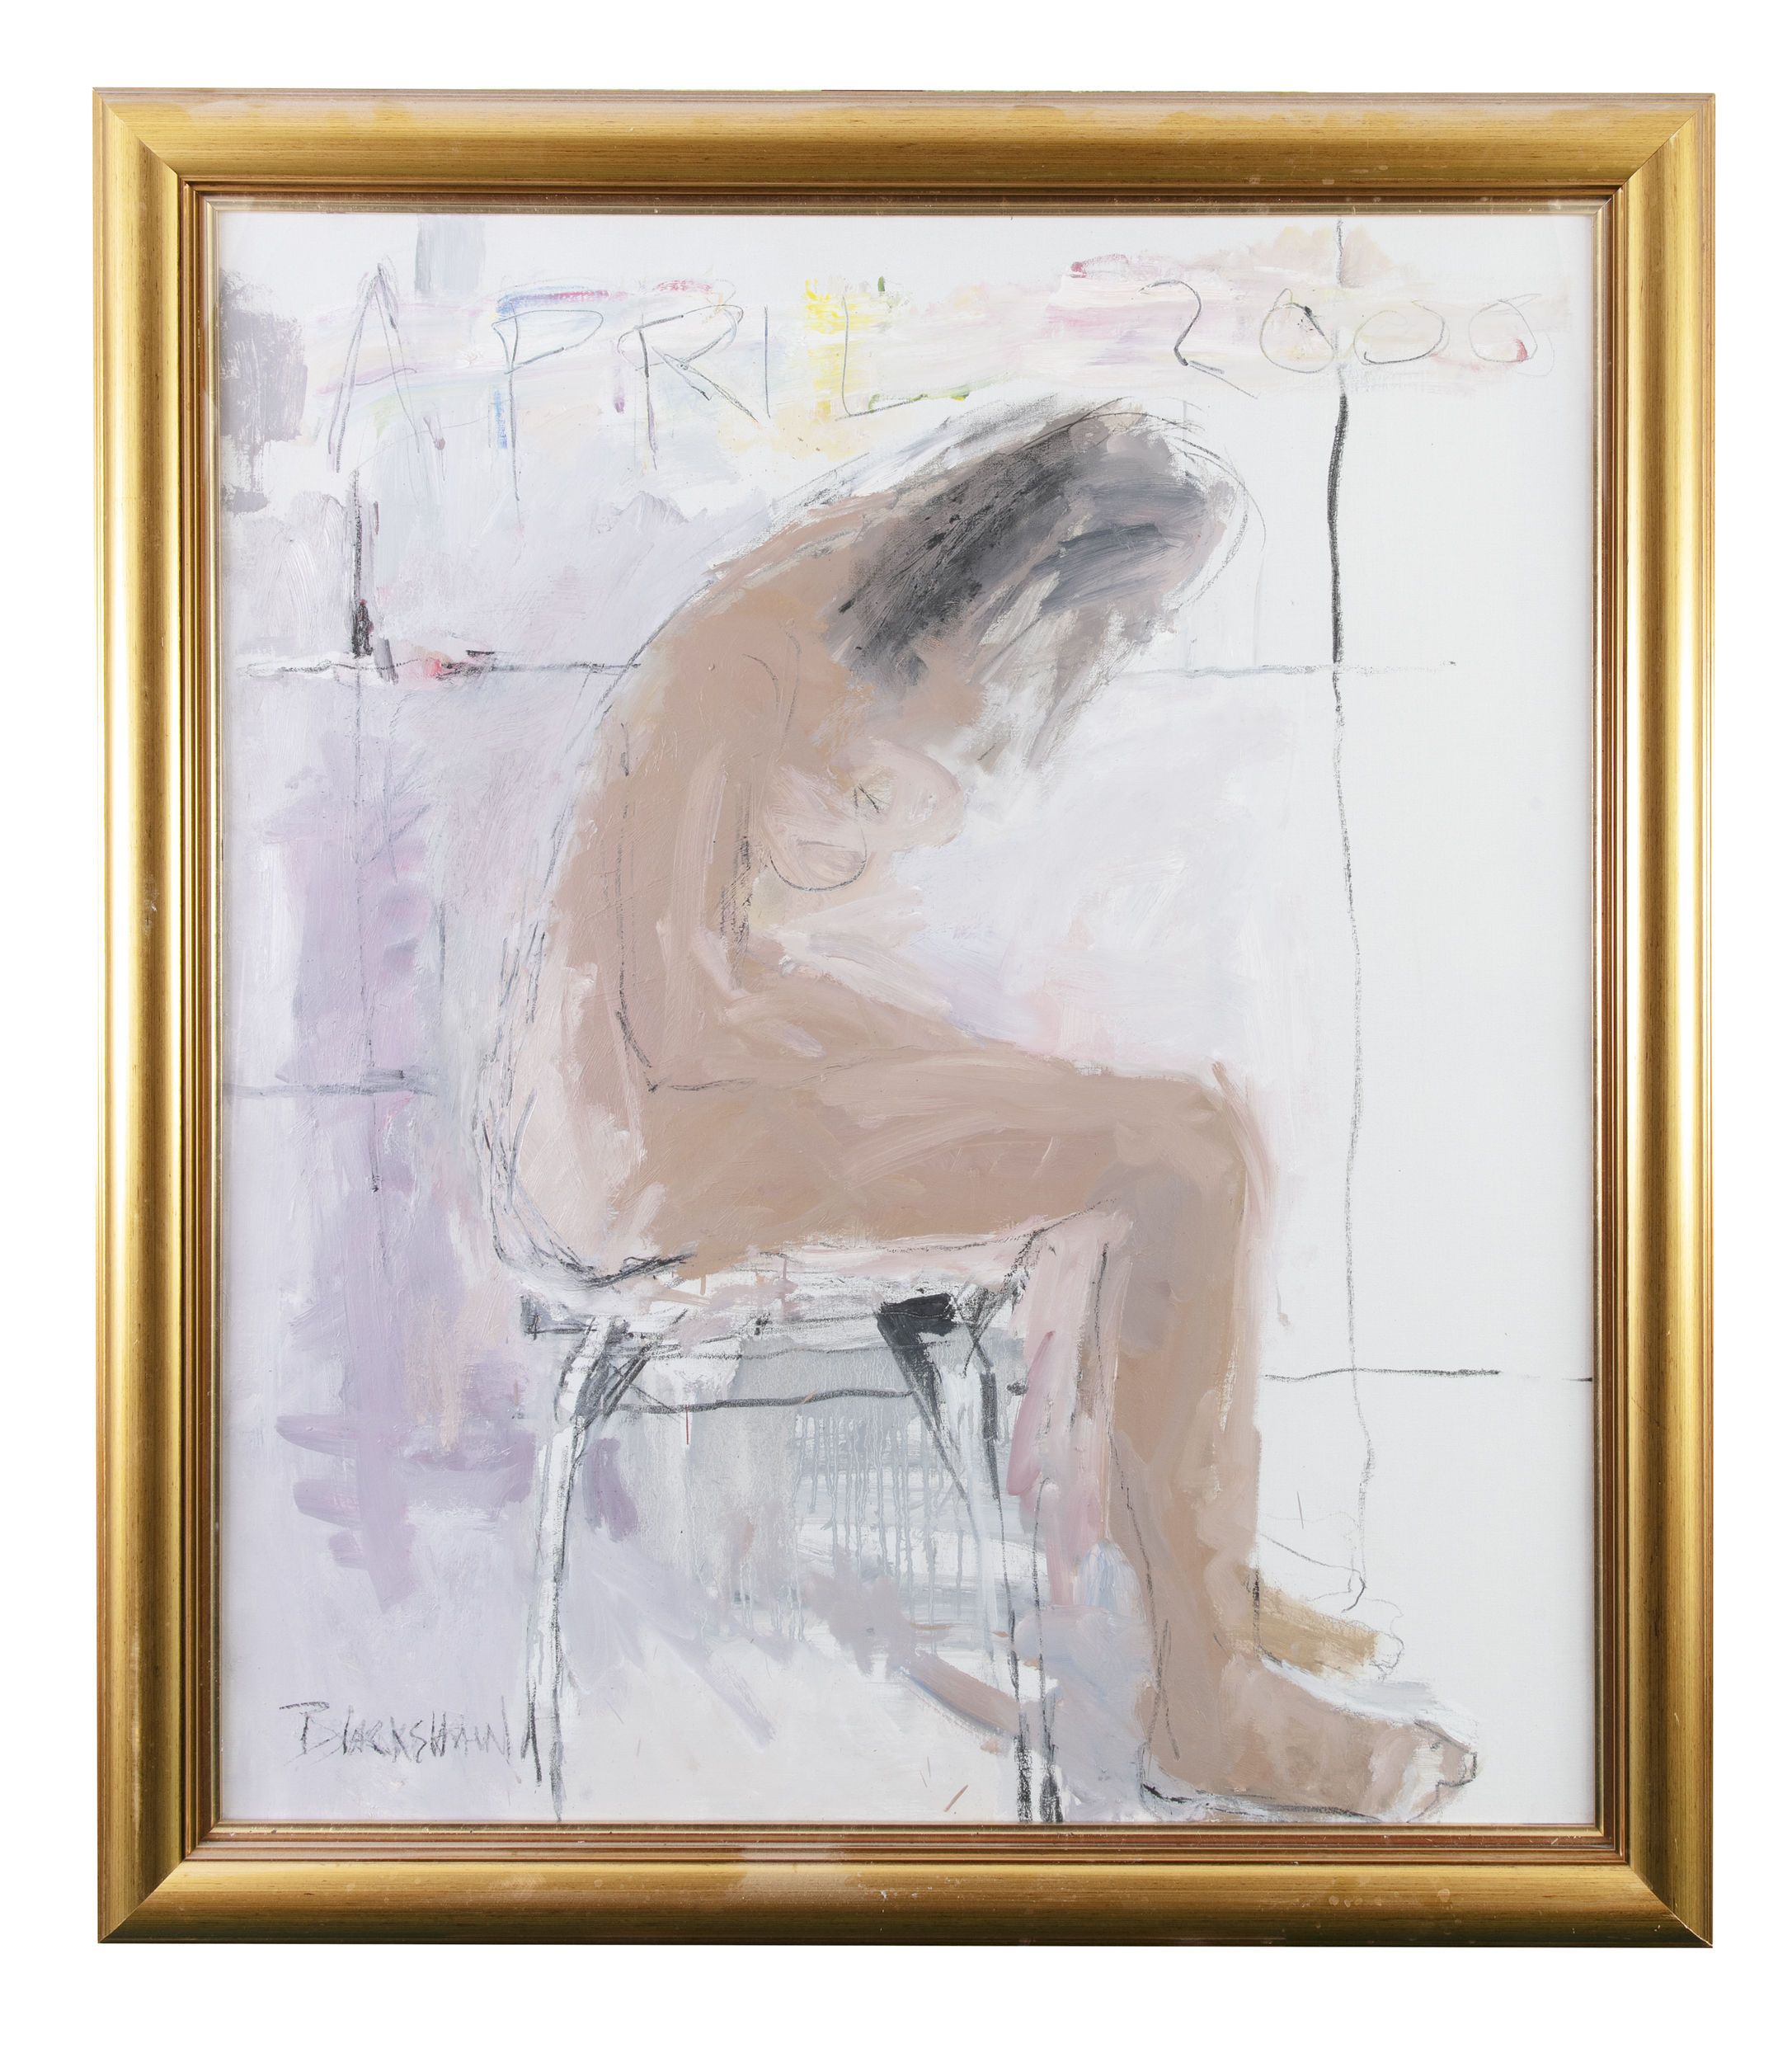 Basil Blackshaw HRHA RUA (1932-2016)Seated Figure (Jude)Oil on canvas, 99 x 84cm (39 x 33)Signed and - Image 2 of 4